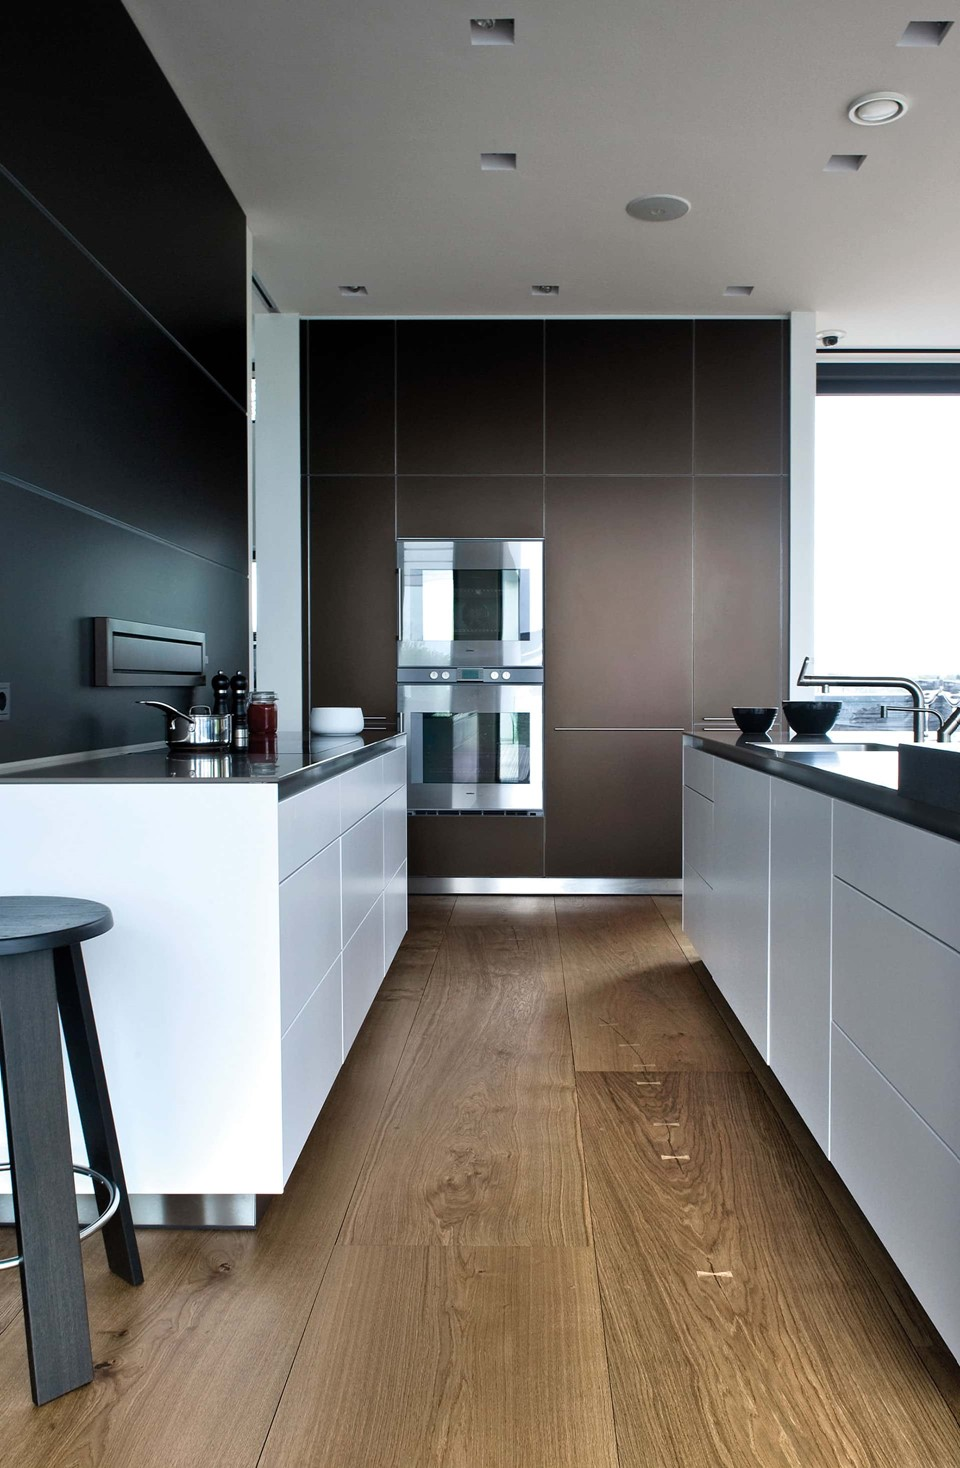 oak-hardwood-floors-heartoak_natural-oil_strib-residence_kitchen_dinesen.jpg